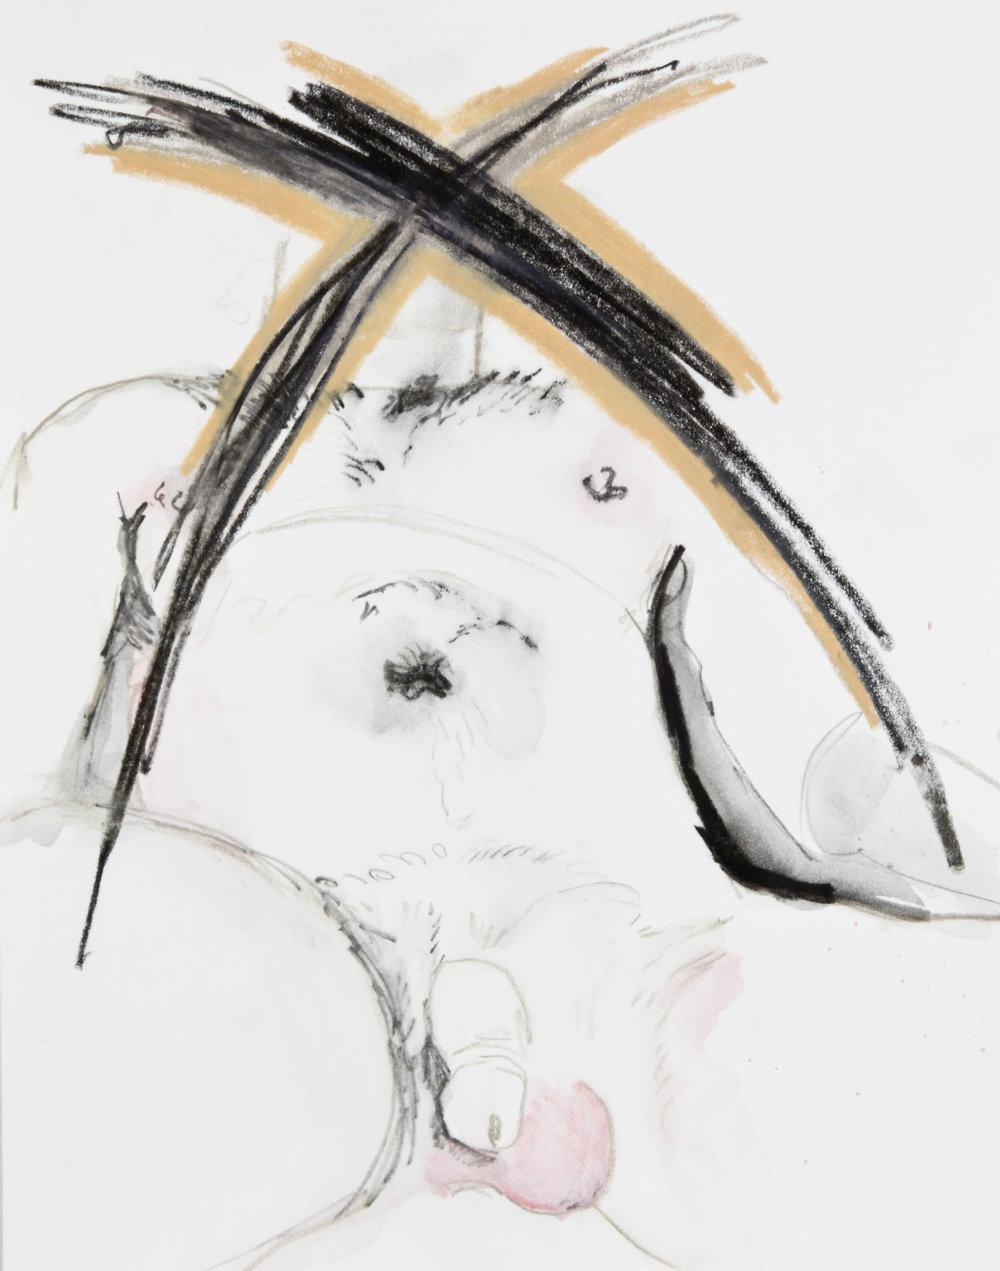 X Marks It, 2013, graphite, crayon and watercolor pencil on paper, 11x14 inches